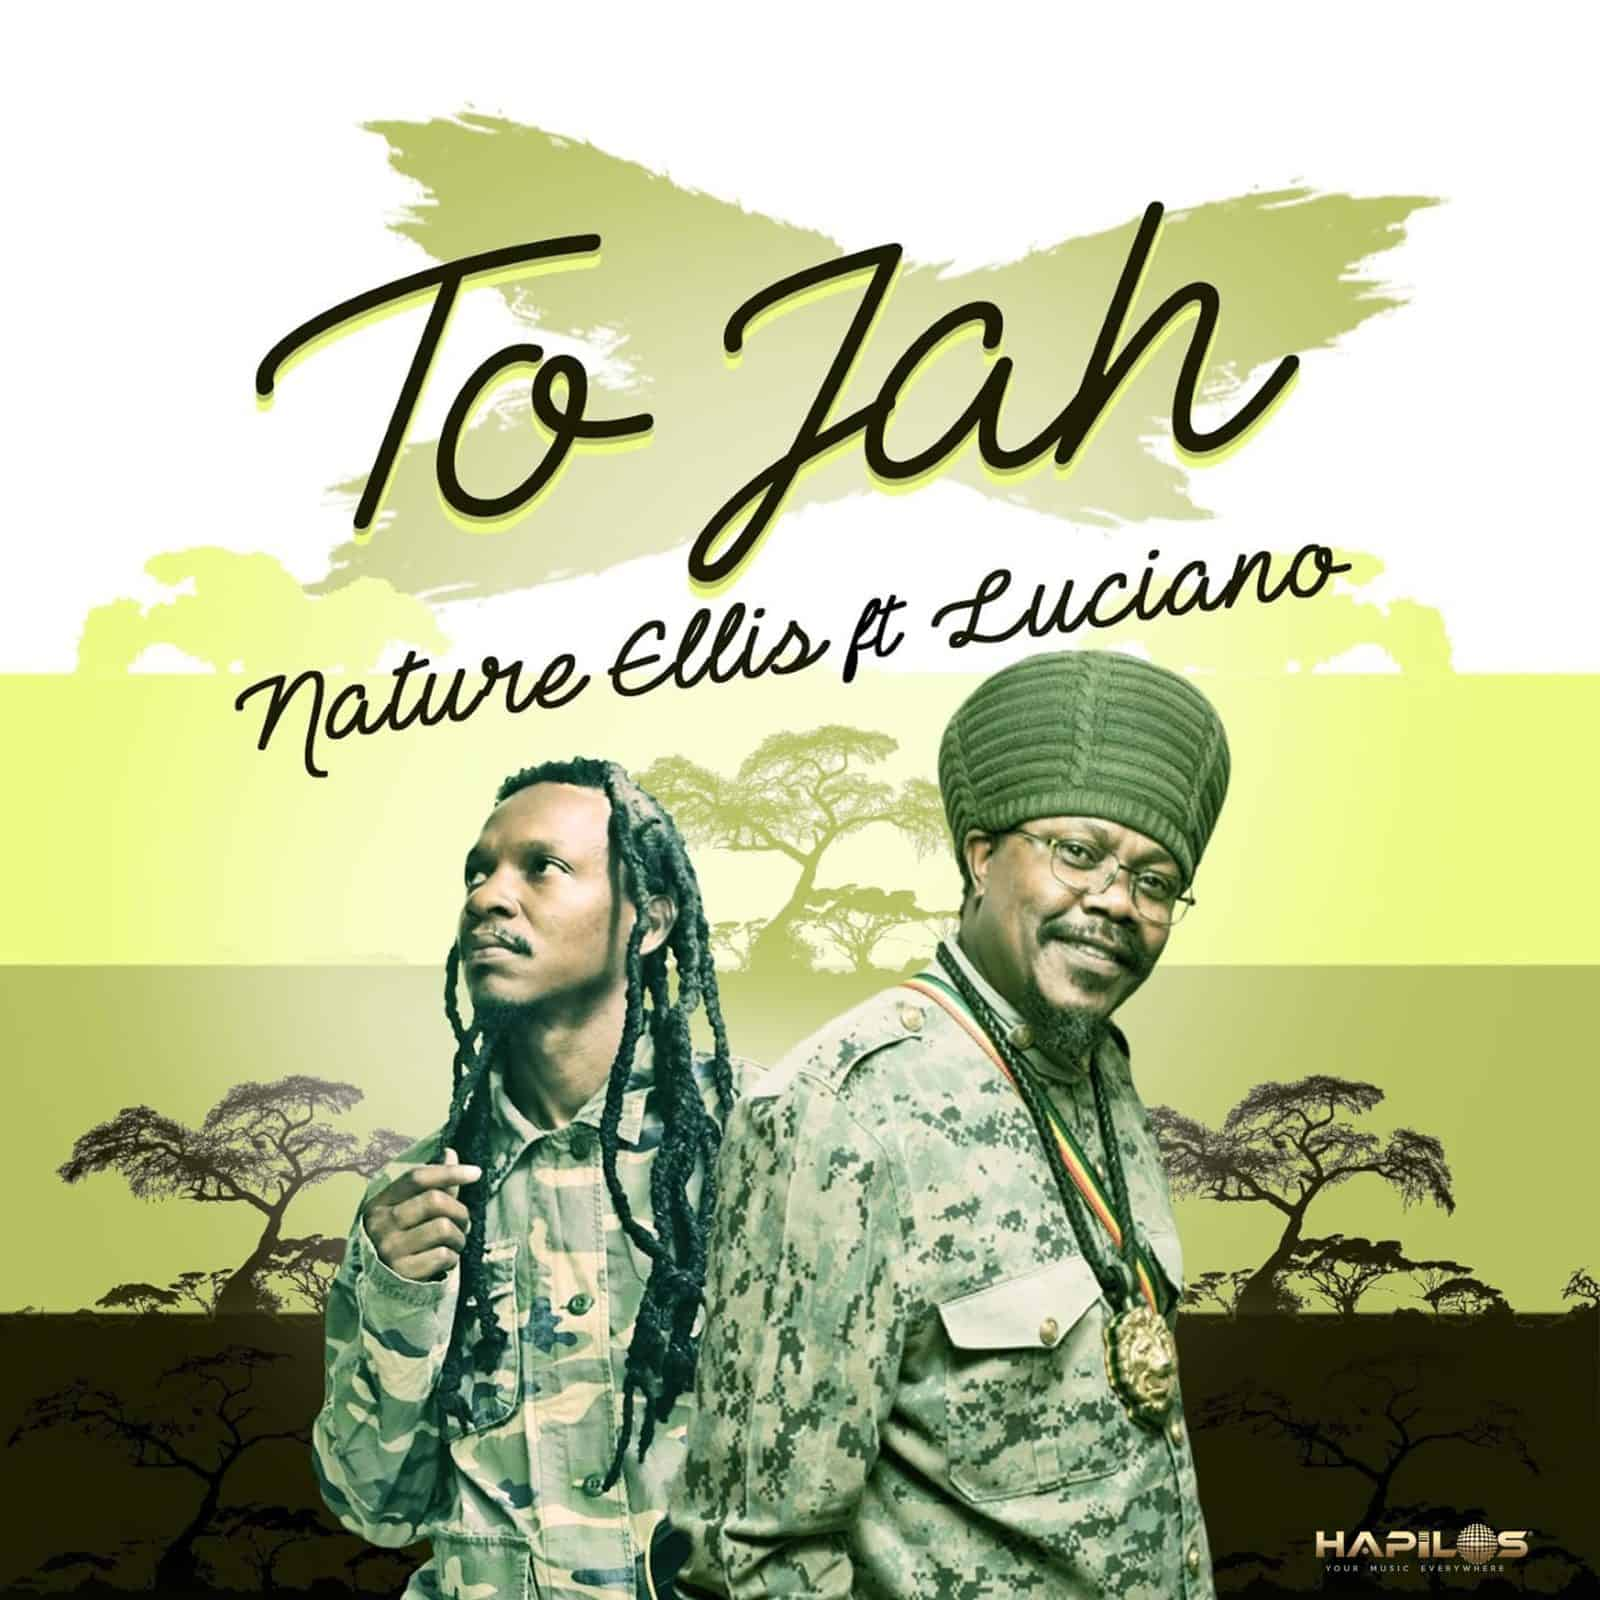 Nature Ellis - To Jah (feat. Luciano) - Ambassodors of Choice